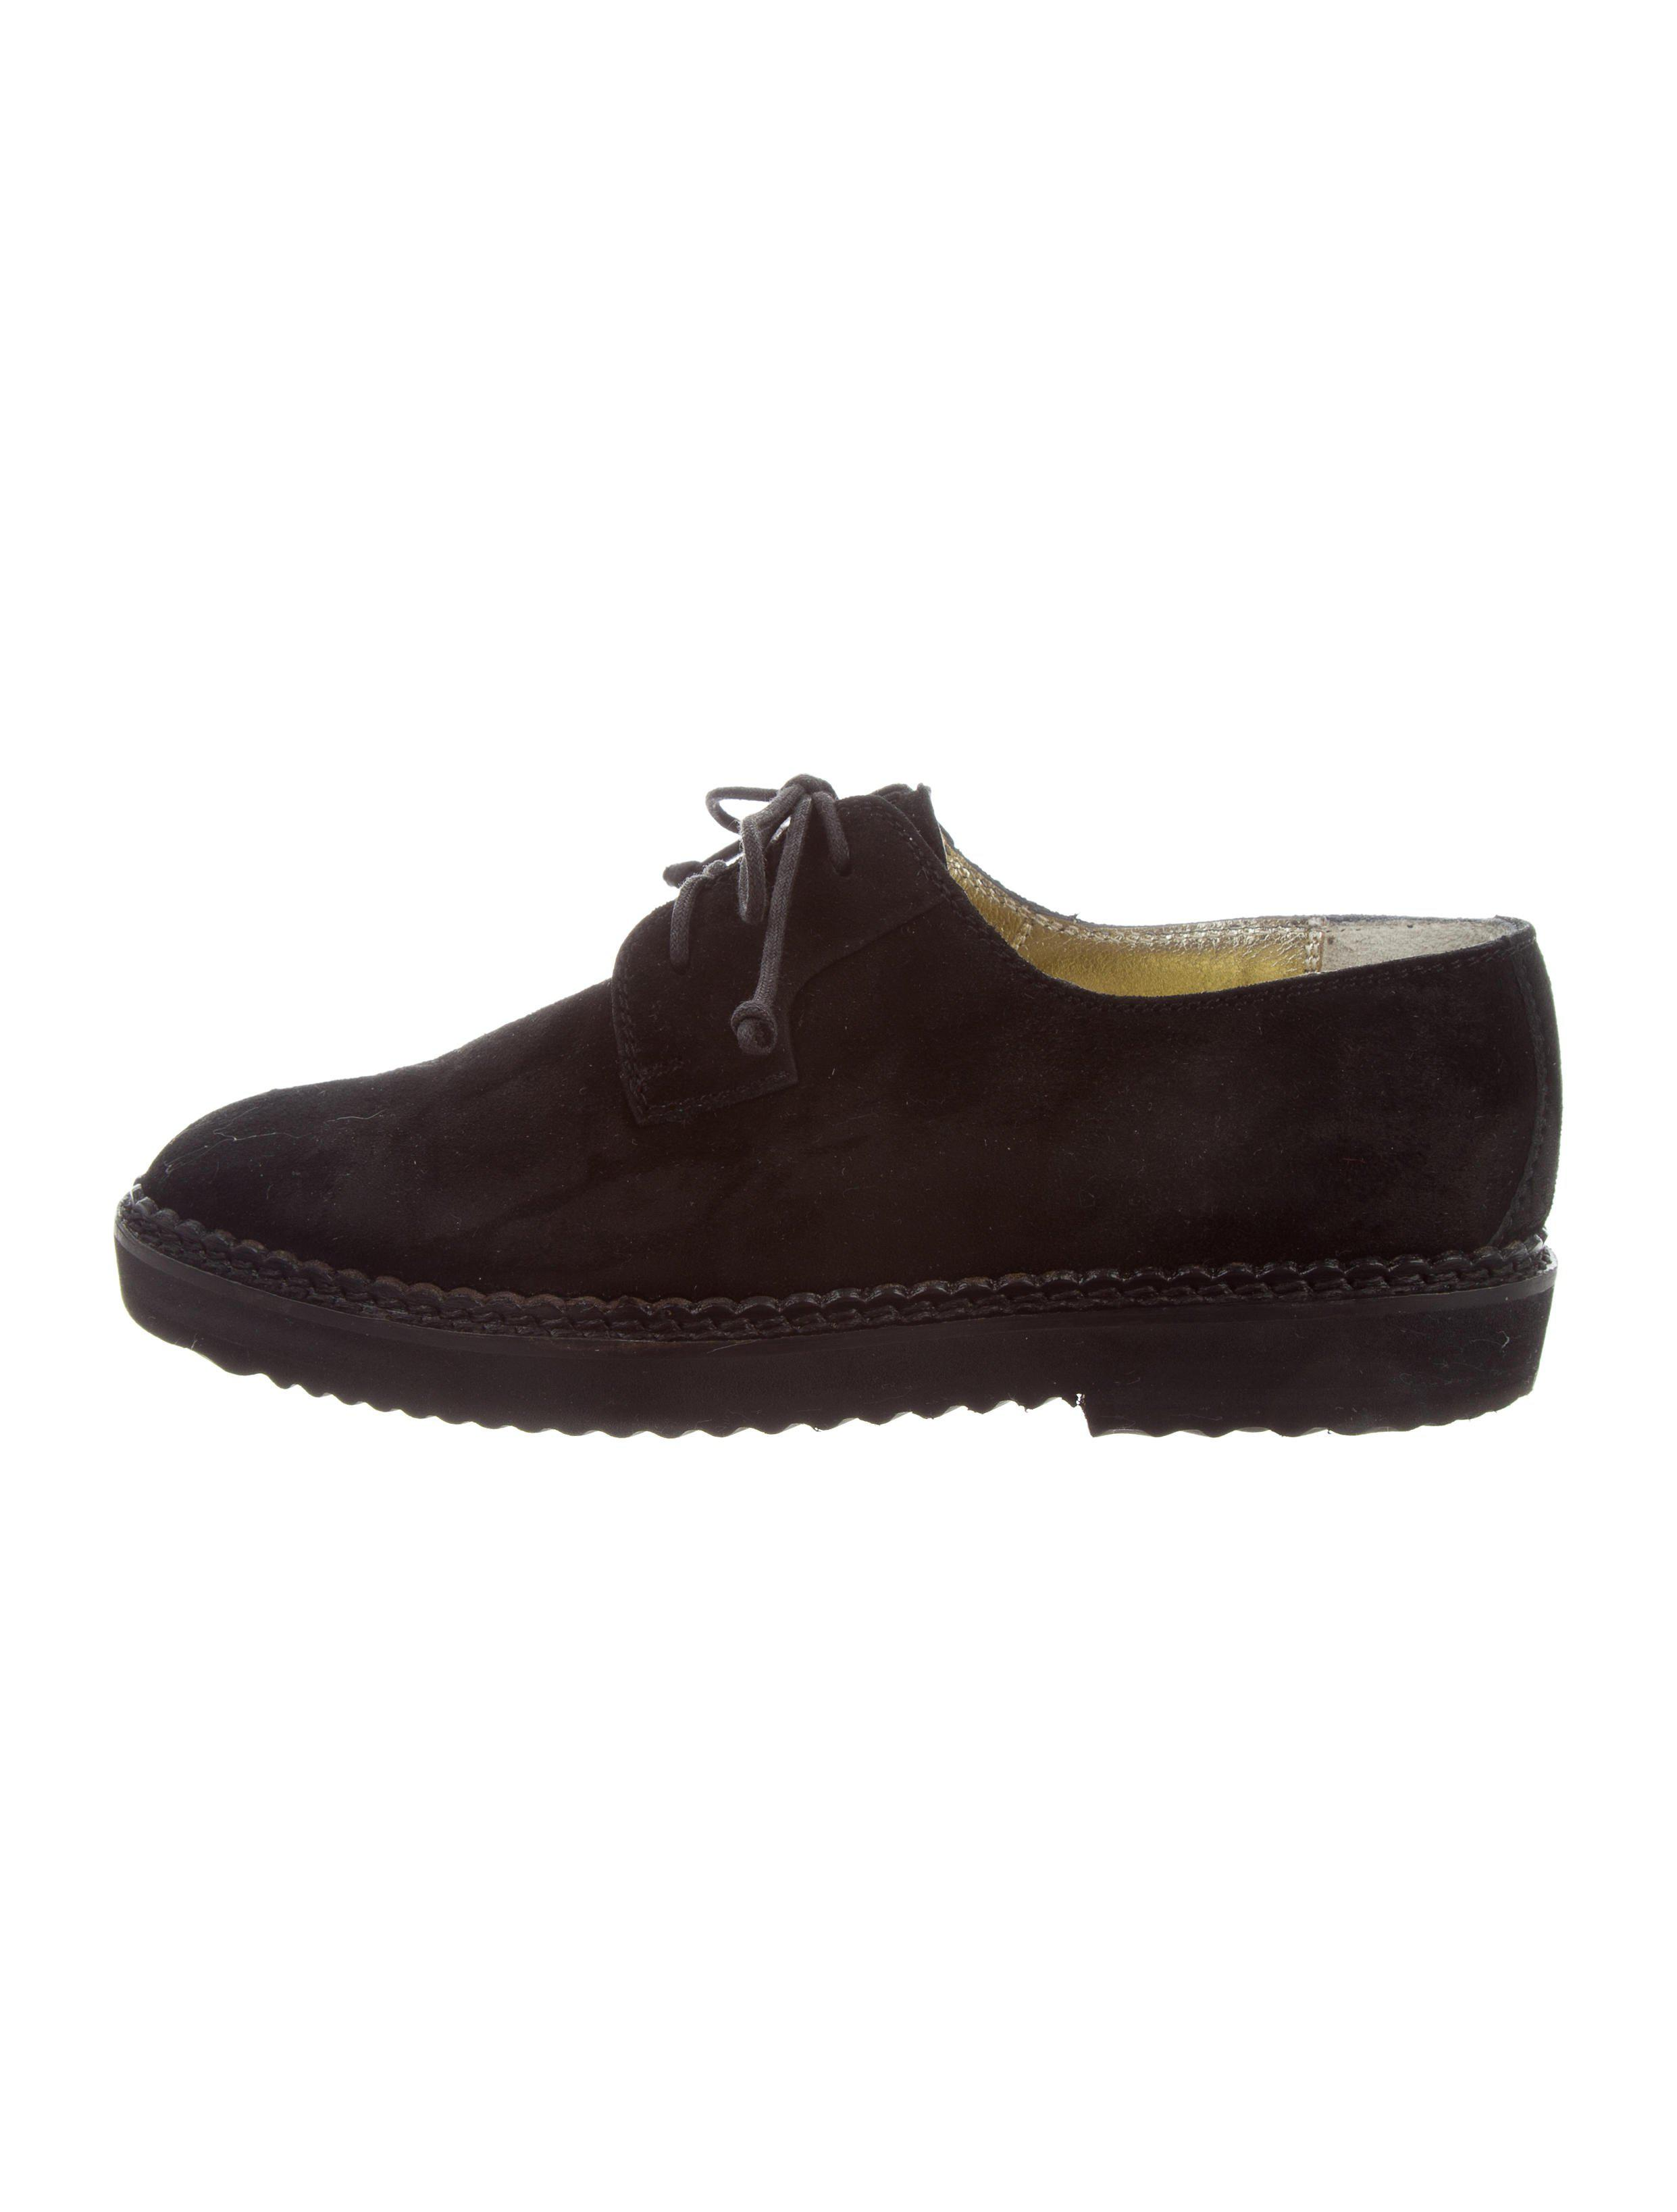 best cheap price with credit card cheap price Walter Steiger Suede Flatform Oxfords outlet cheapest price original cheap online buy cheap footaction aPZhspiz